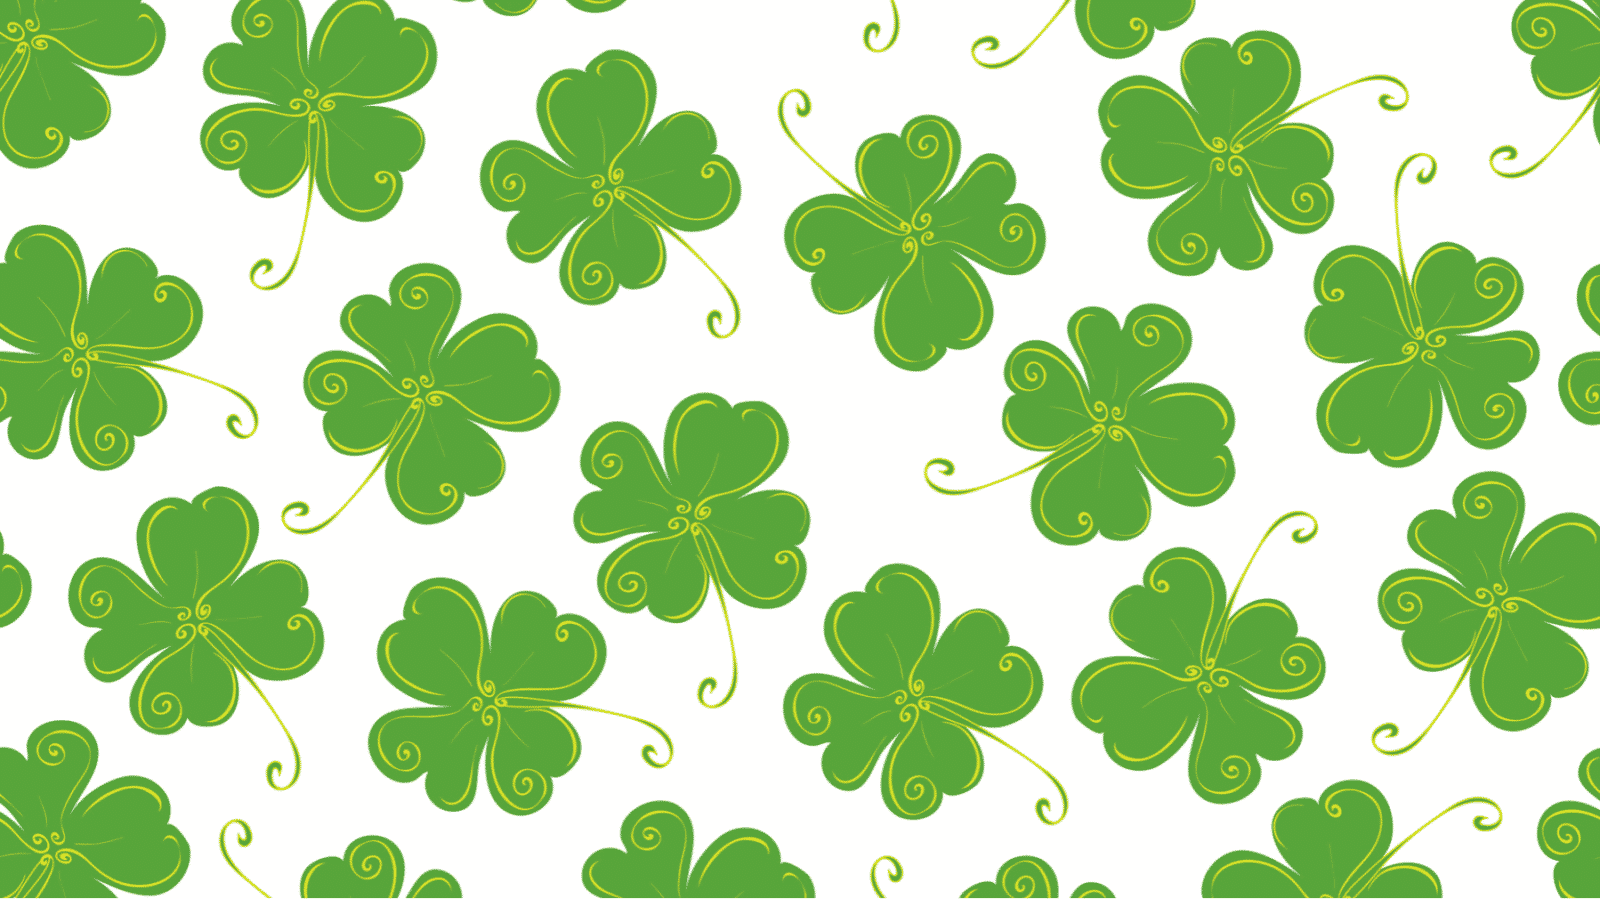 St patricks day is next tuesday how will you celebrate animatron is celebrating with a new animation on our landing page where a four leaf clover brings gold and rainbows to animatron hero and animatrini biocorpaavc